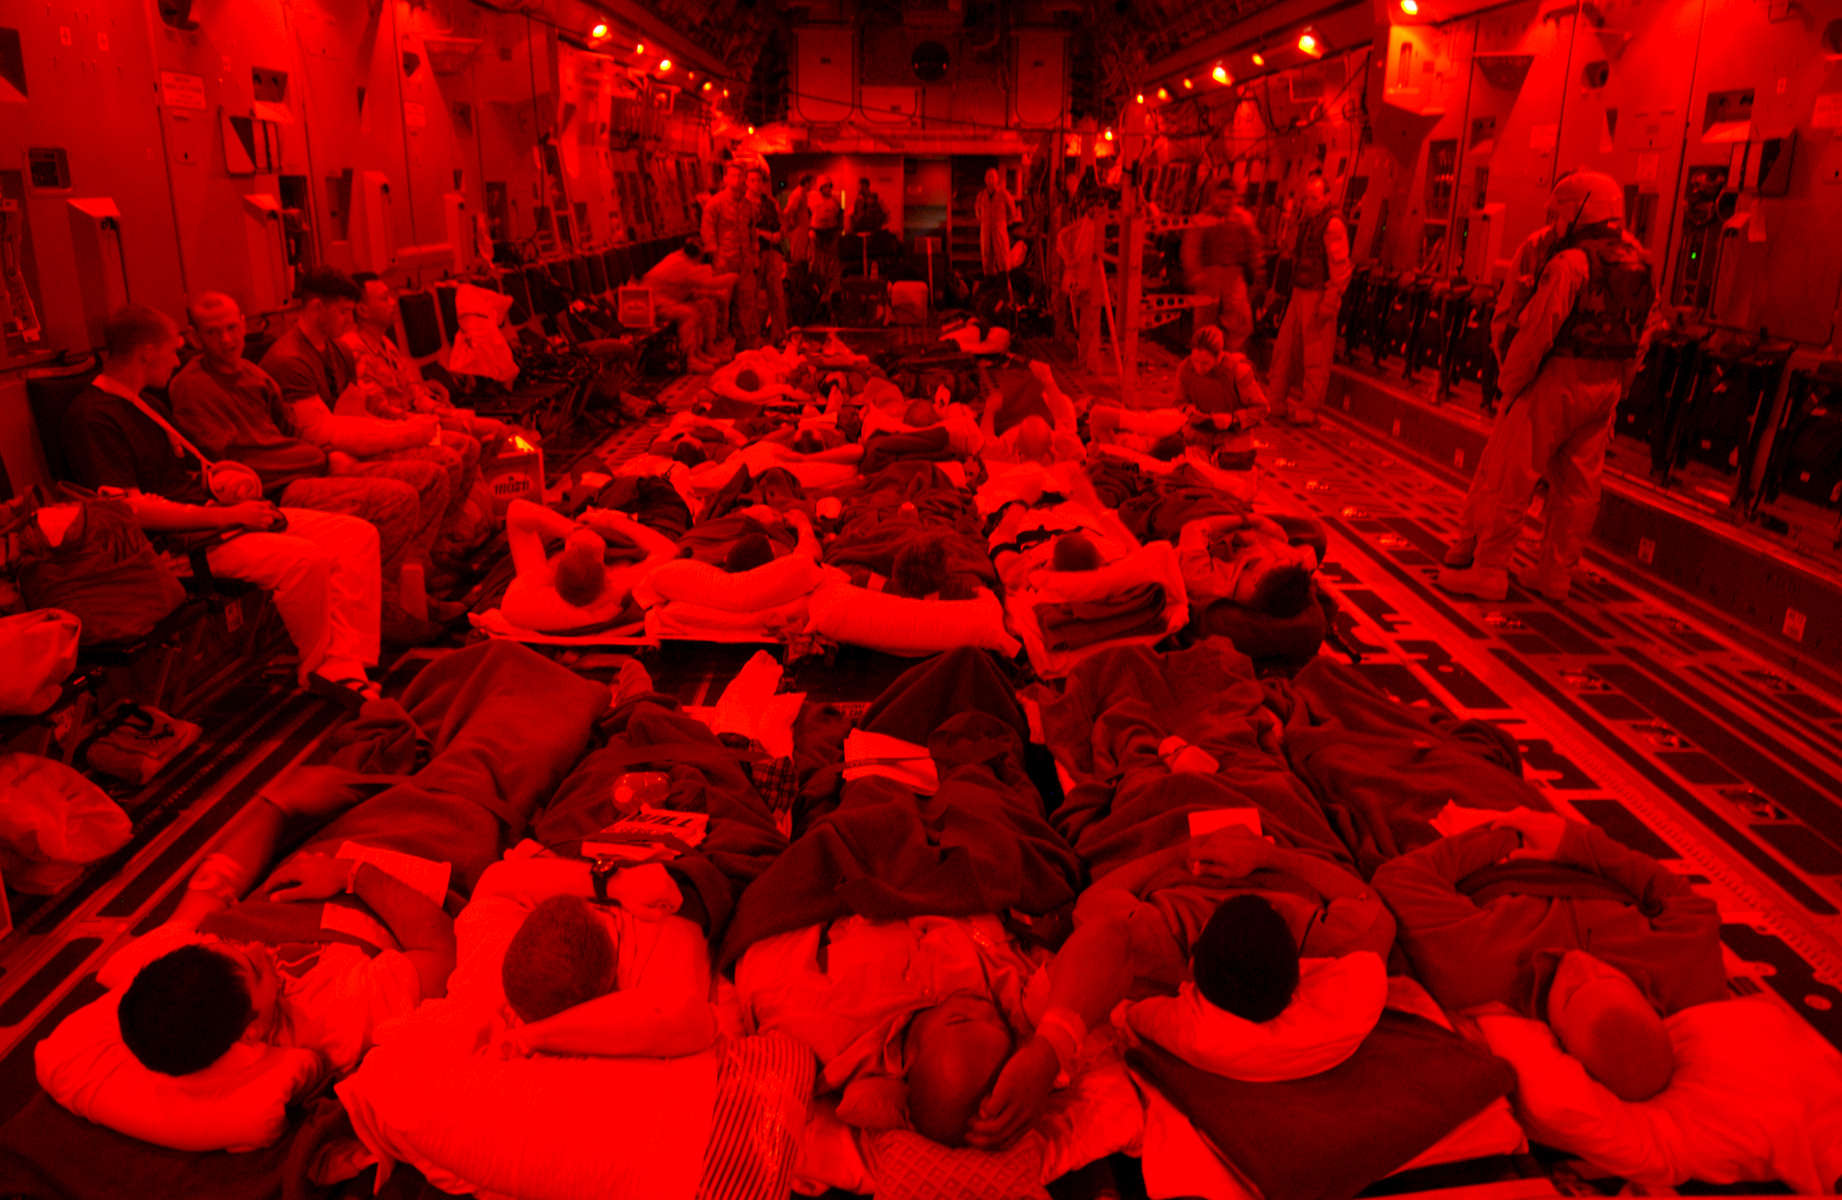 United States injured soldiers sit on a cargo plane before taking off to Germany from the Balad airforce base.  The interior lights of the plane are red because of an 'alarm red' attack, which indicates that the base is under attack, usually by incoming mortar rounds.  Since the attack on Fallujah began in early november, hundreds of soldiers have been injured and evacuated from the country.